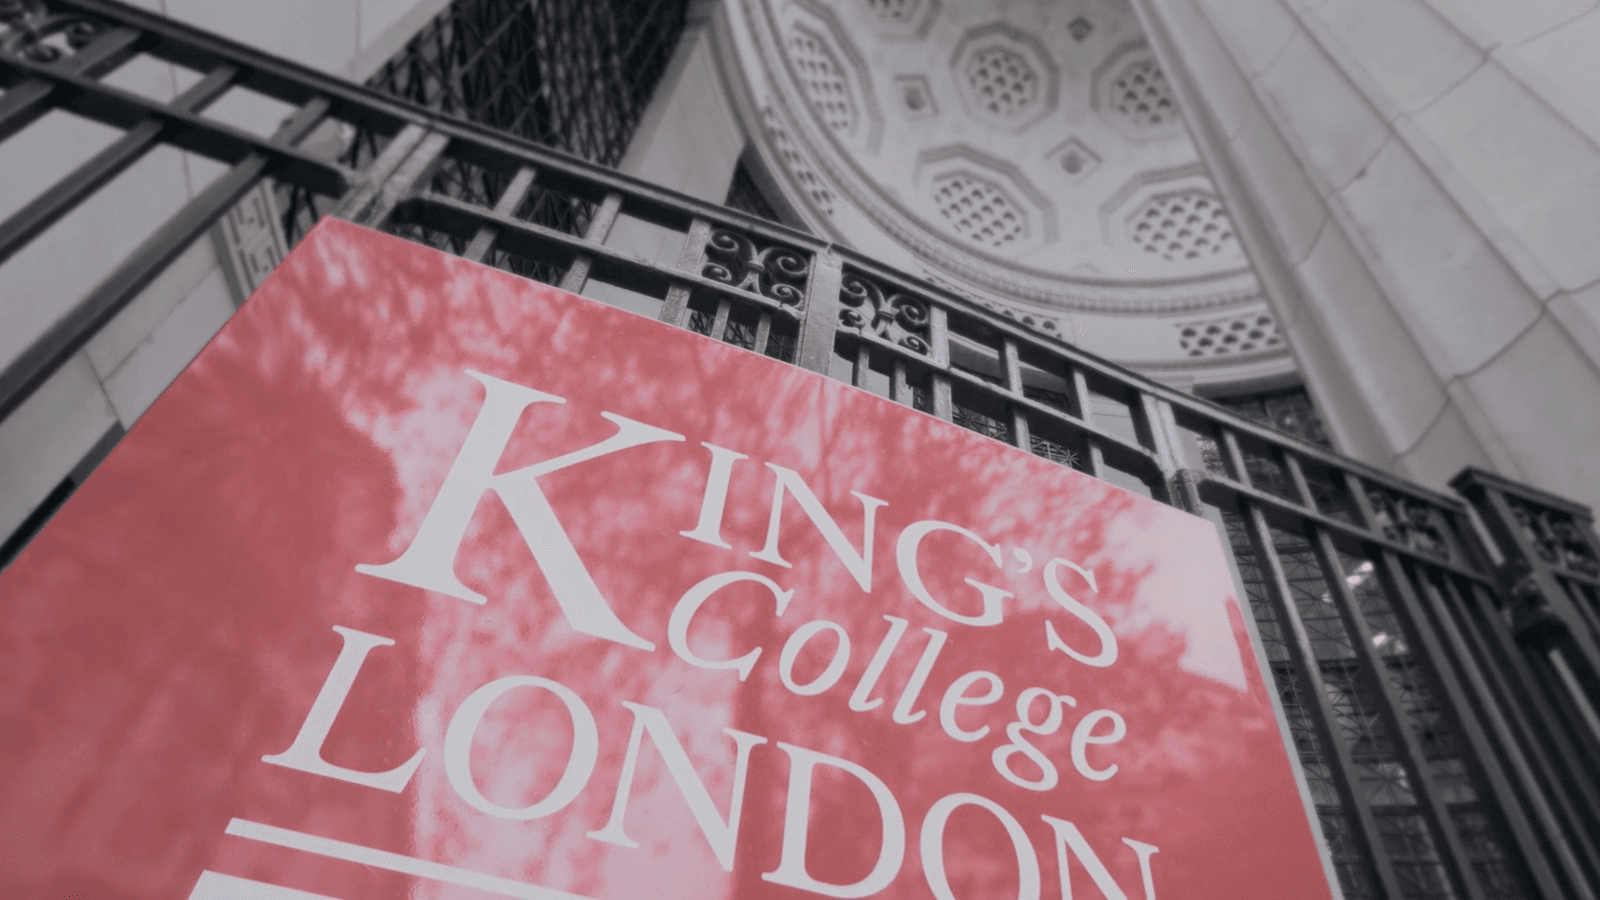 King's College London Sign